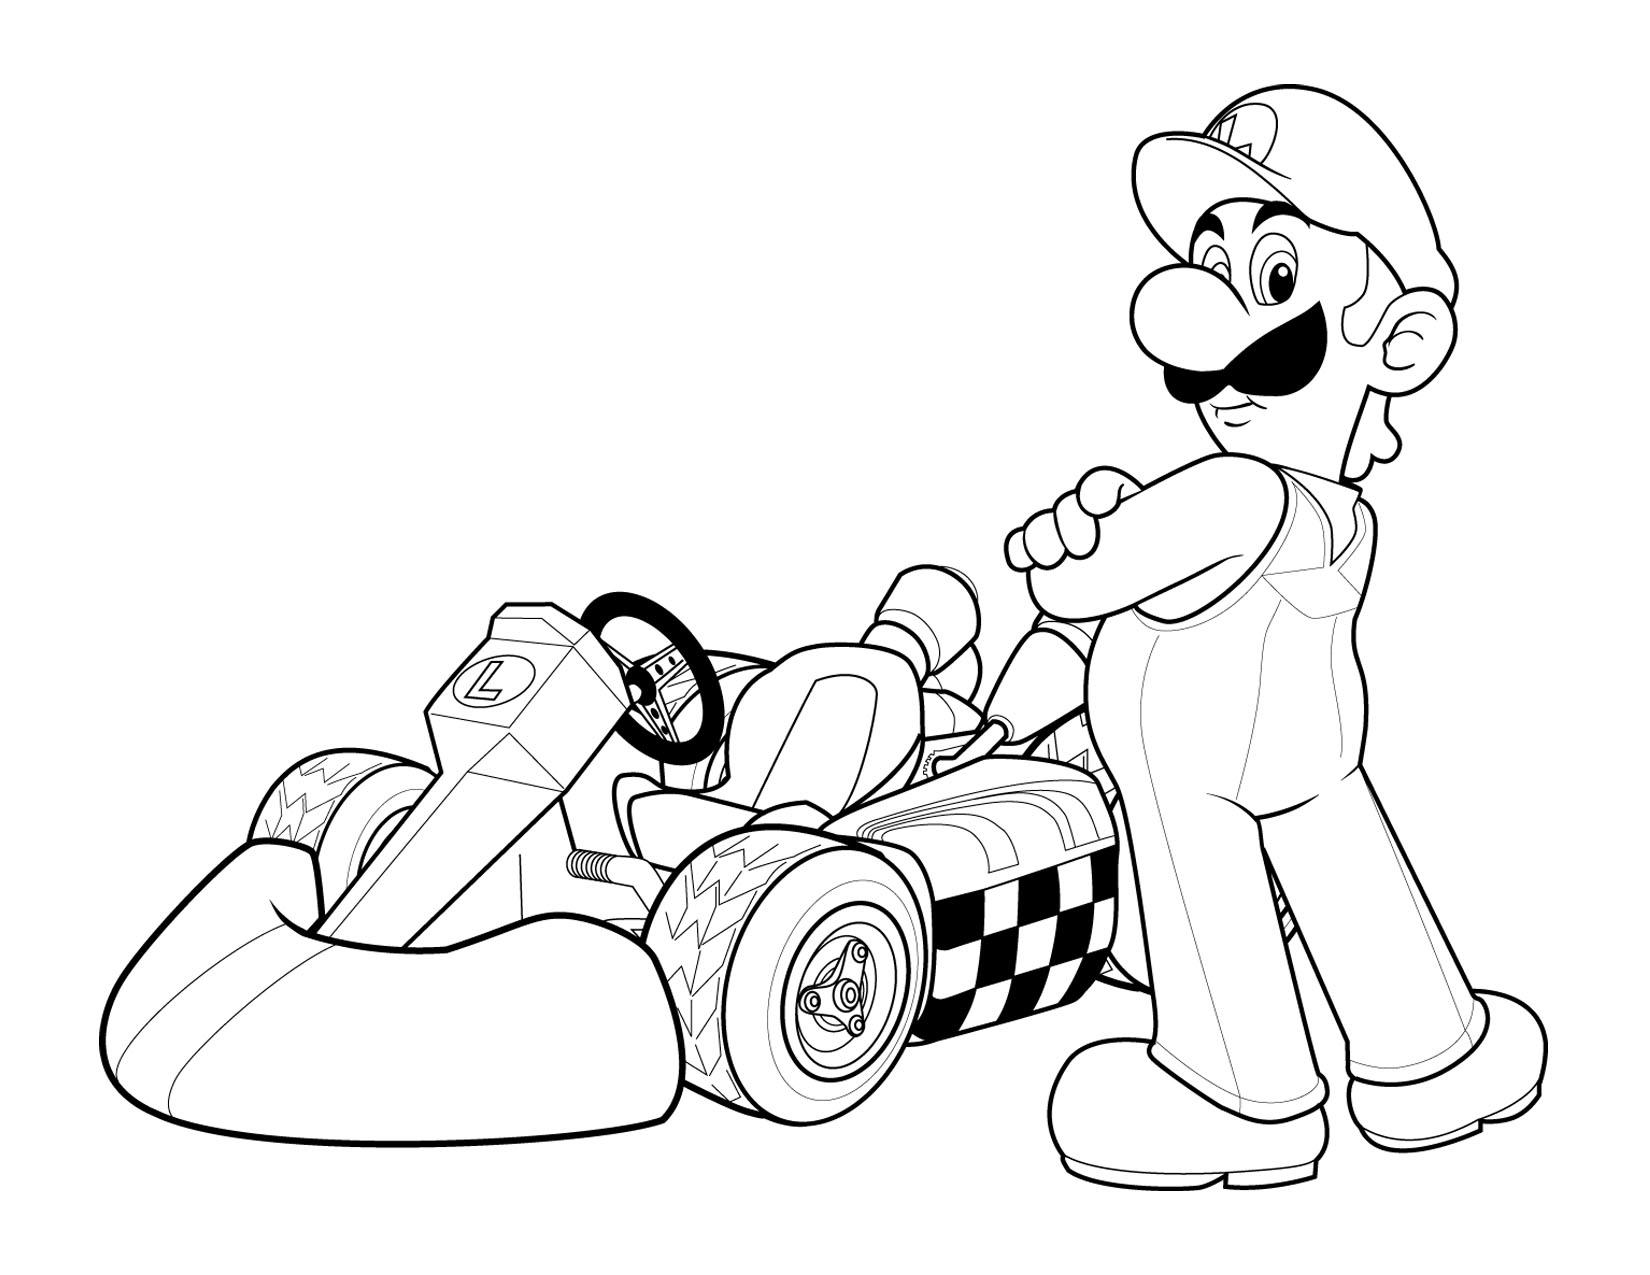 Propeller Mario Coloring Pages Coloring Pages